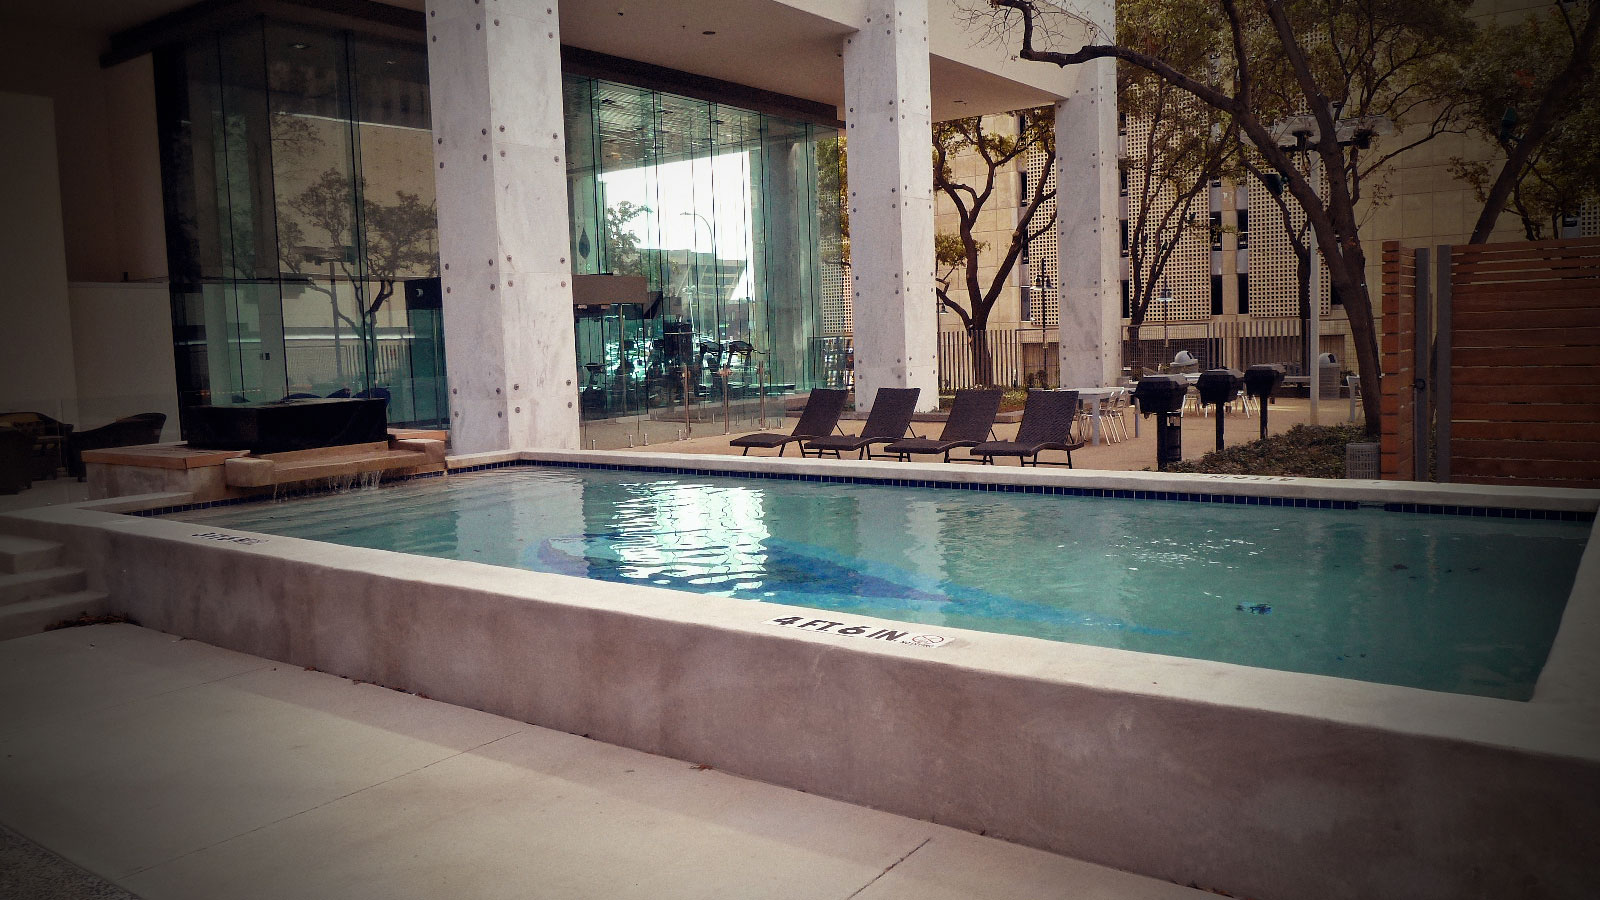 Lsg lofts affordable living in downtown dallas tx for Affordable pools dfw